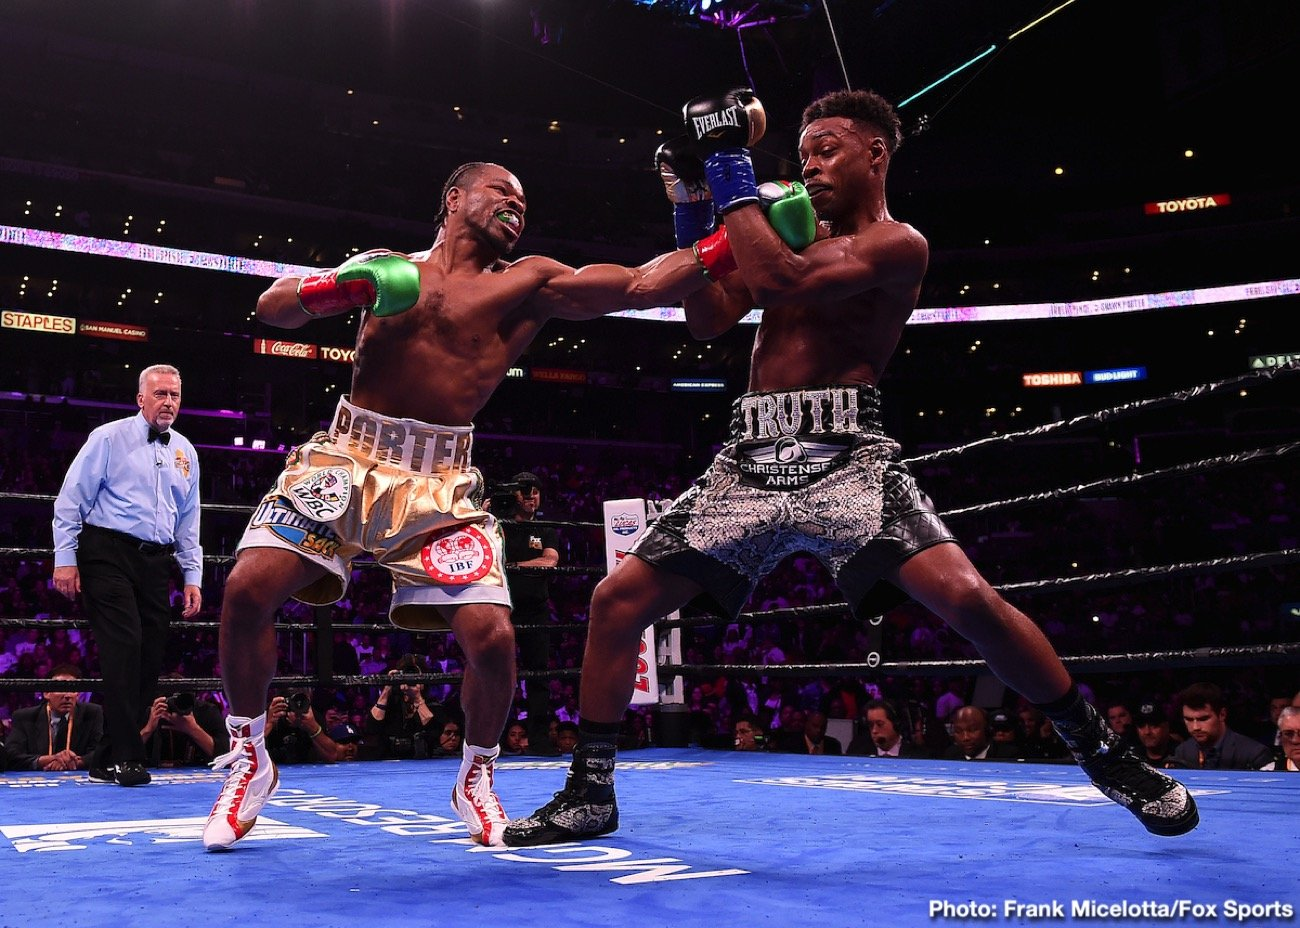 Errol Spence, Shawn Porter - Fight fans knew they were in for a good fight last night, as rival welterweight champions Errol Spence and Shawn Porter collided in a unification showdown. What they got was a great fight, perhaps The Fight of The Year. Spence added the WBC crown to his IBF title by way of a gruelling, often thrilling decision win, in doing so coming through the single hardest fight of his career.